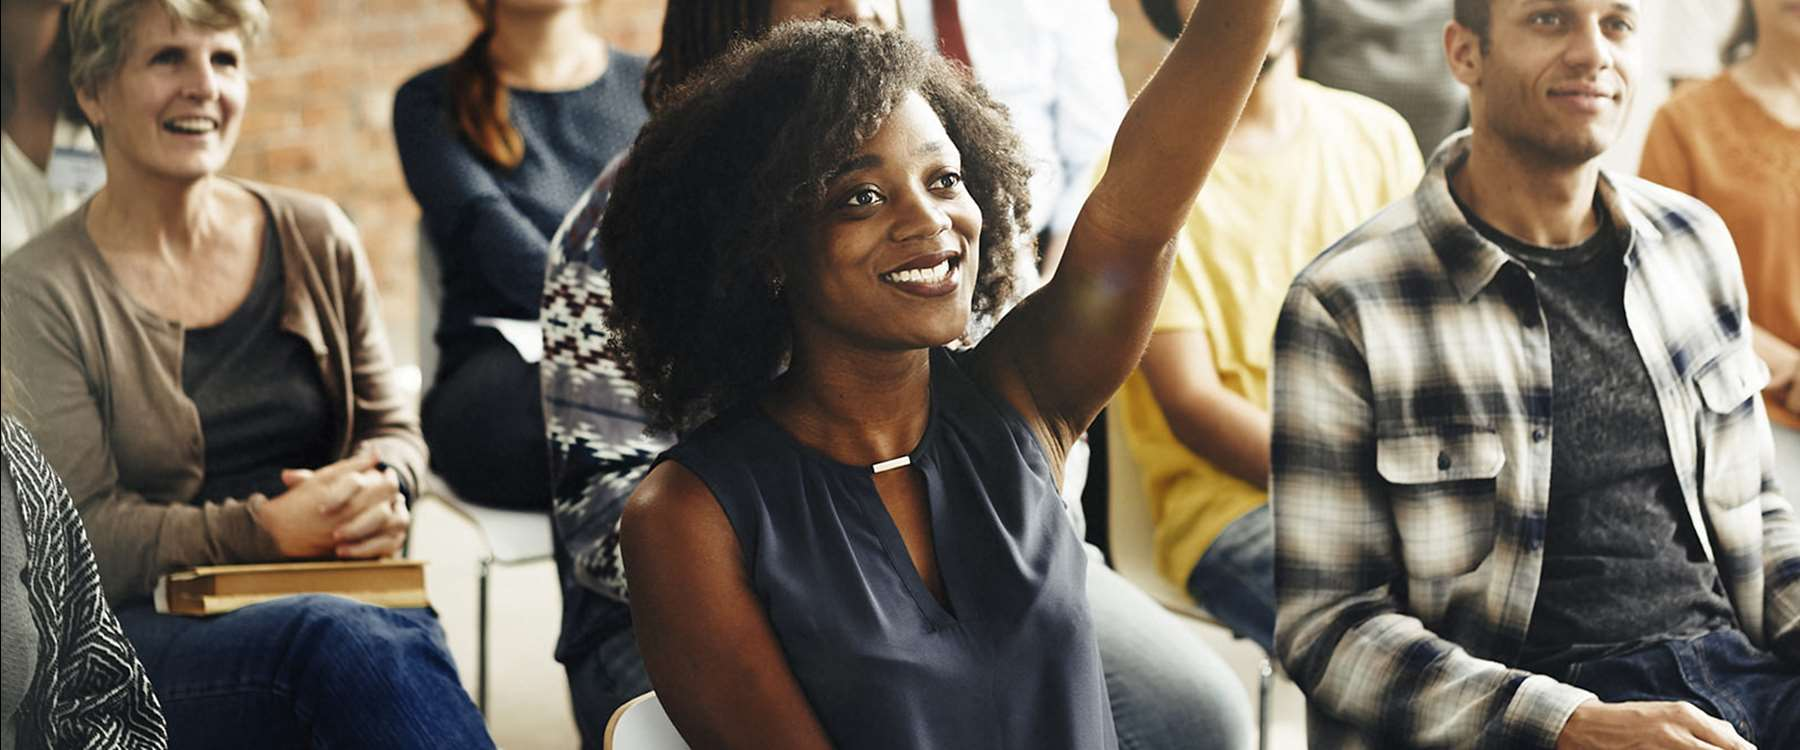 woman raising hand in group